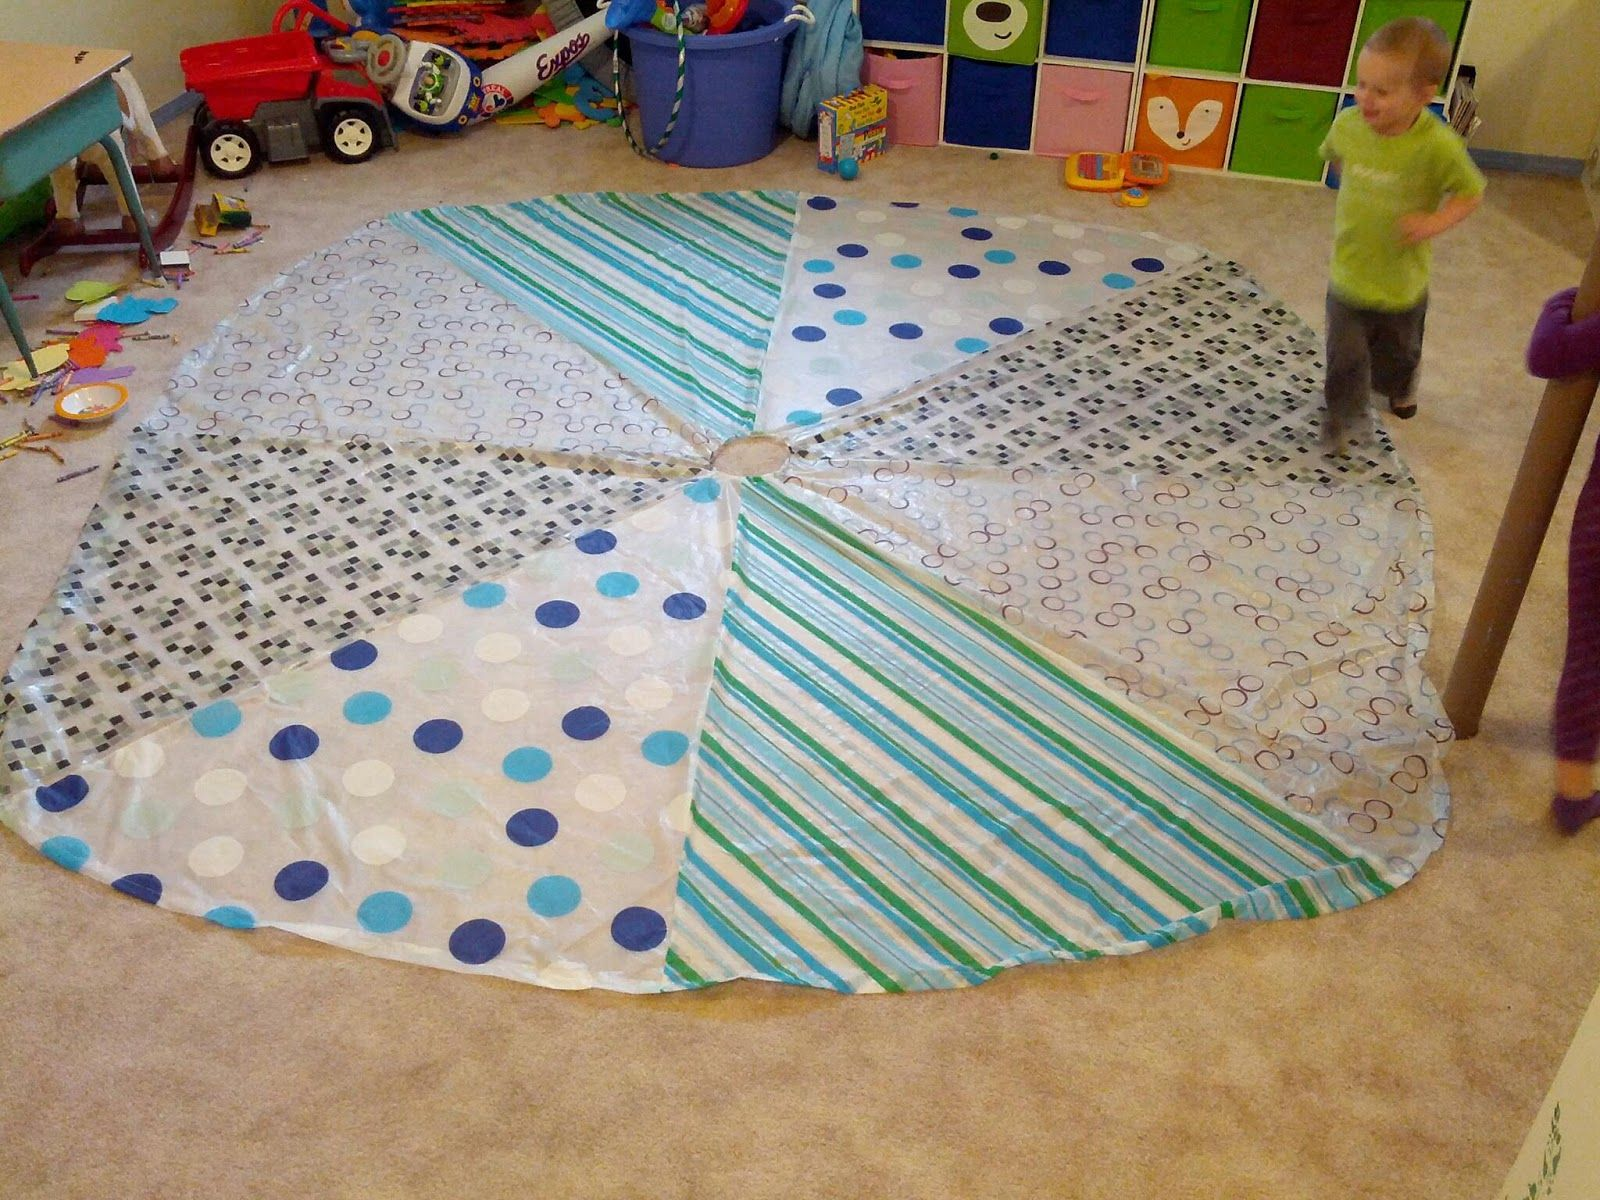 Cool shower curtains for kids - Homemade Play Parachute Made From Dollar Store Shower Curtains